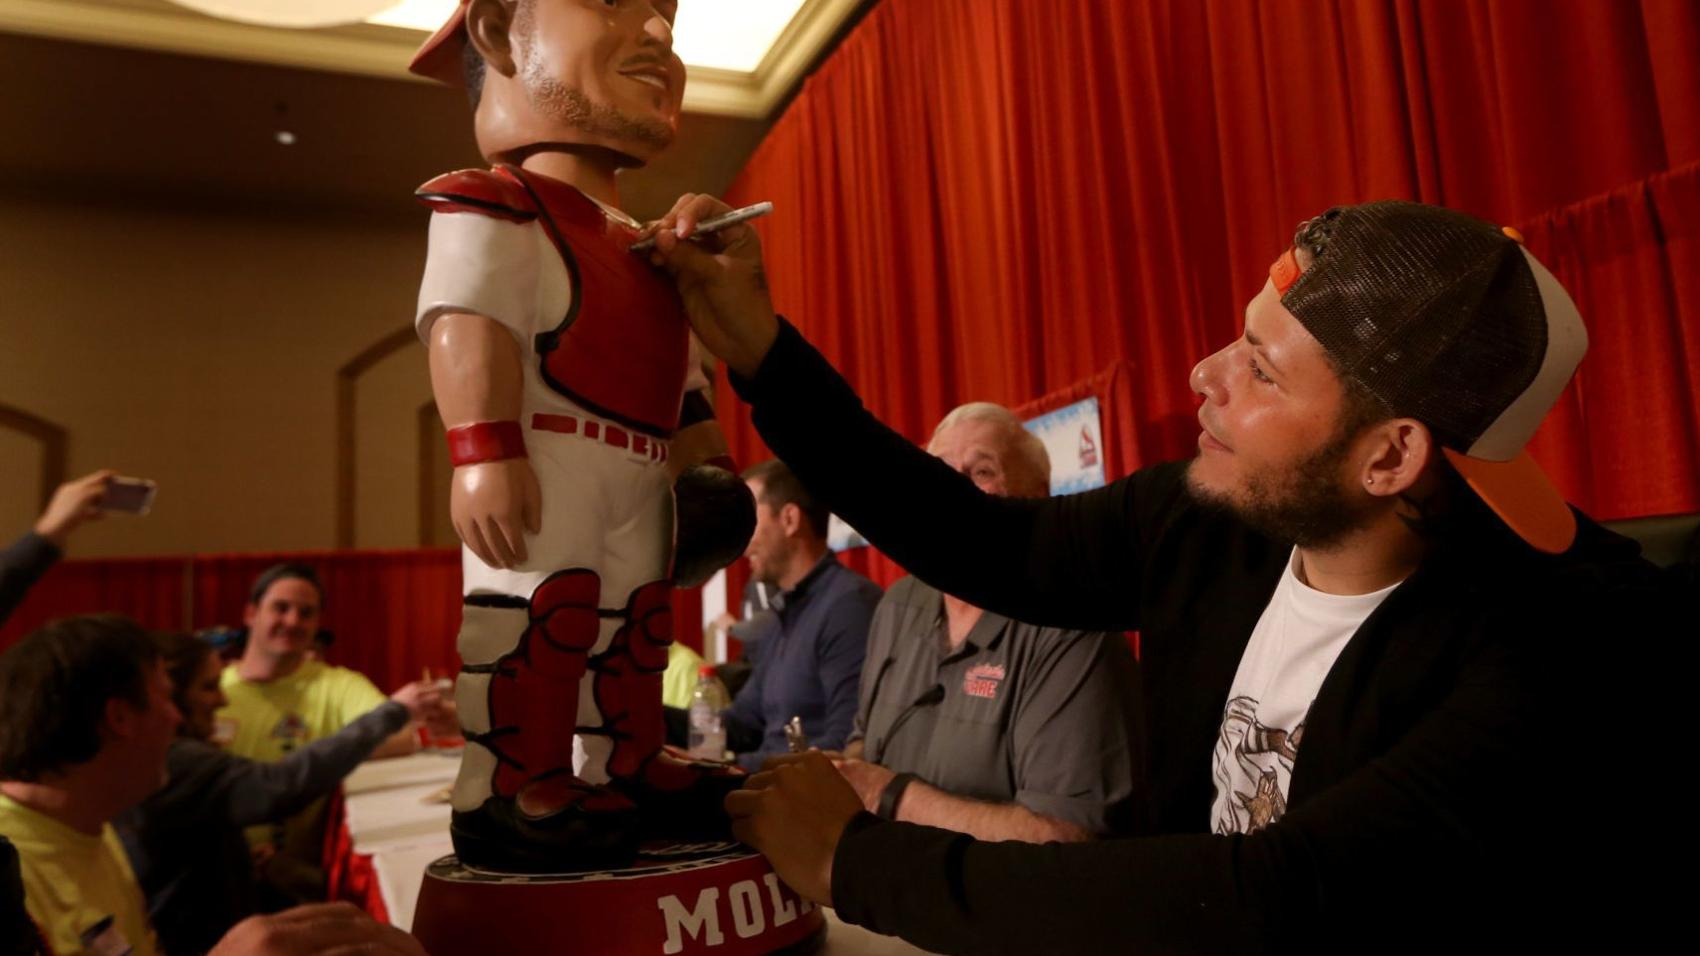 Molina wants to play several more years for Cardinals u2014 and if not them, 'that's it for me'